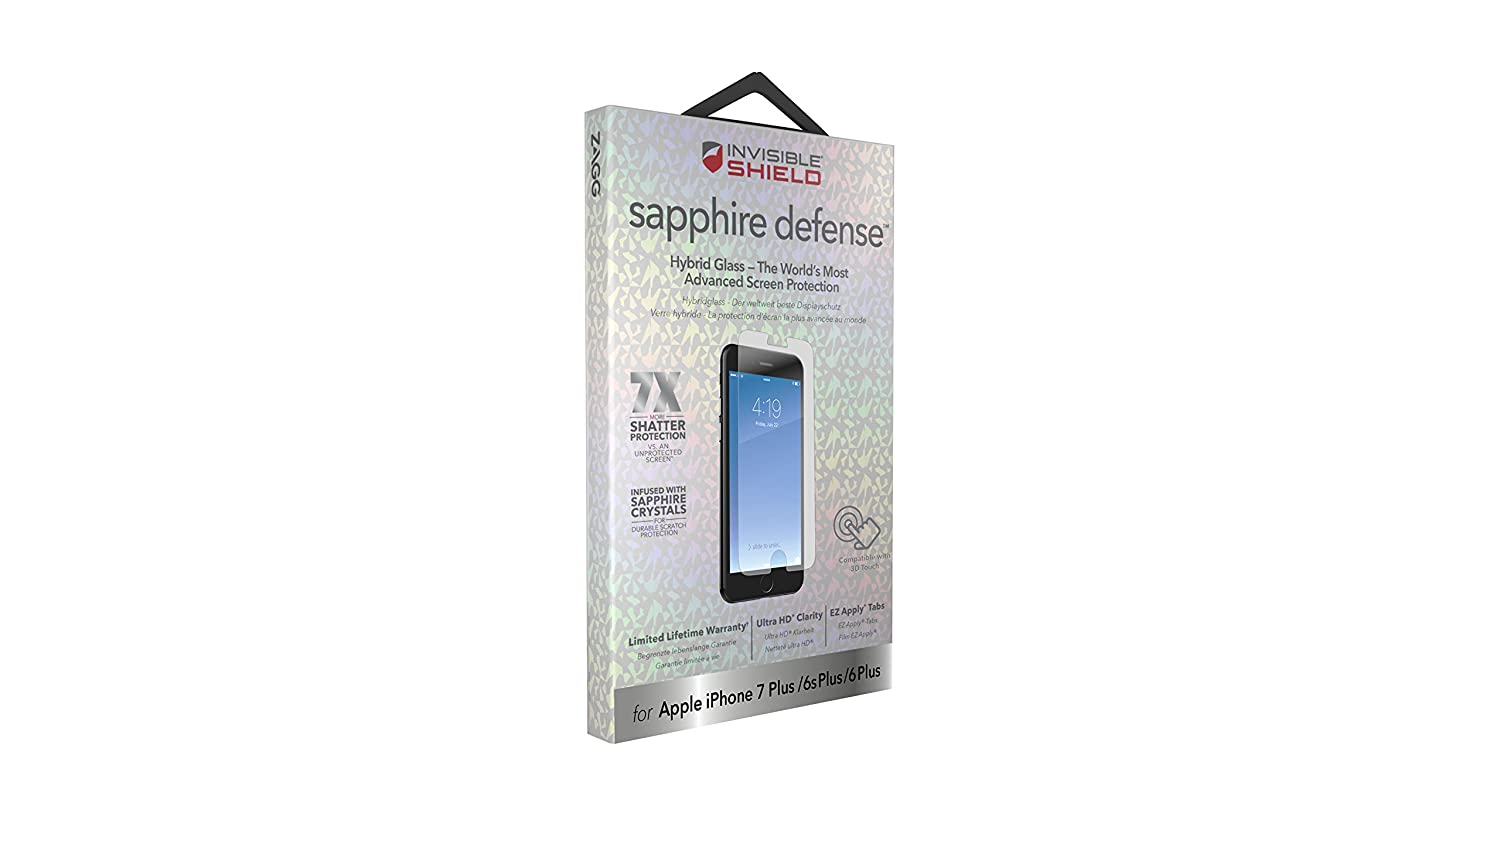 half off 3cac9 d72d1 ZAGG InvisibleShield Sapphire Defense – Hybrid Glass Screen Protector for  Apple iPhone 8 Plus, iPhone 7 Plus, iPhone 6s Plus, iPhone 6 Plus